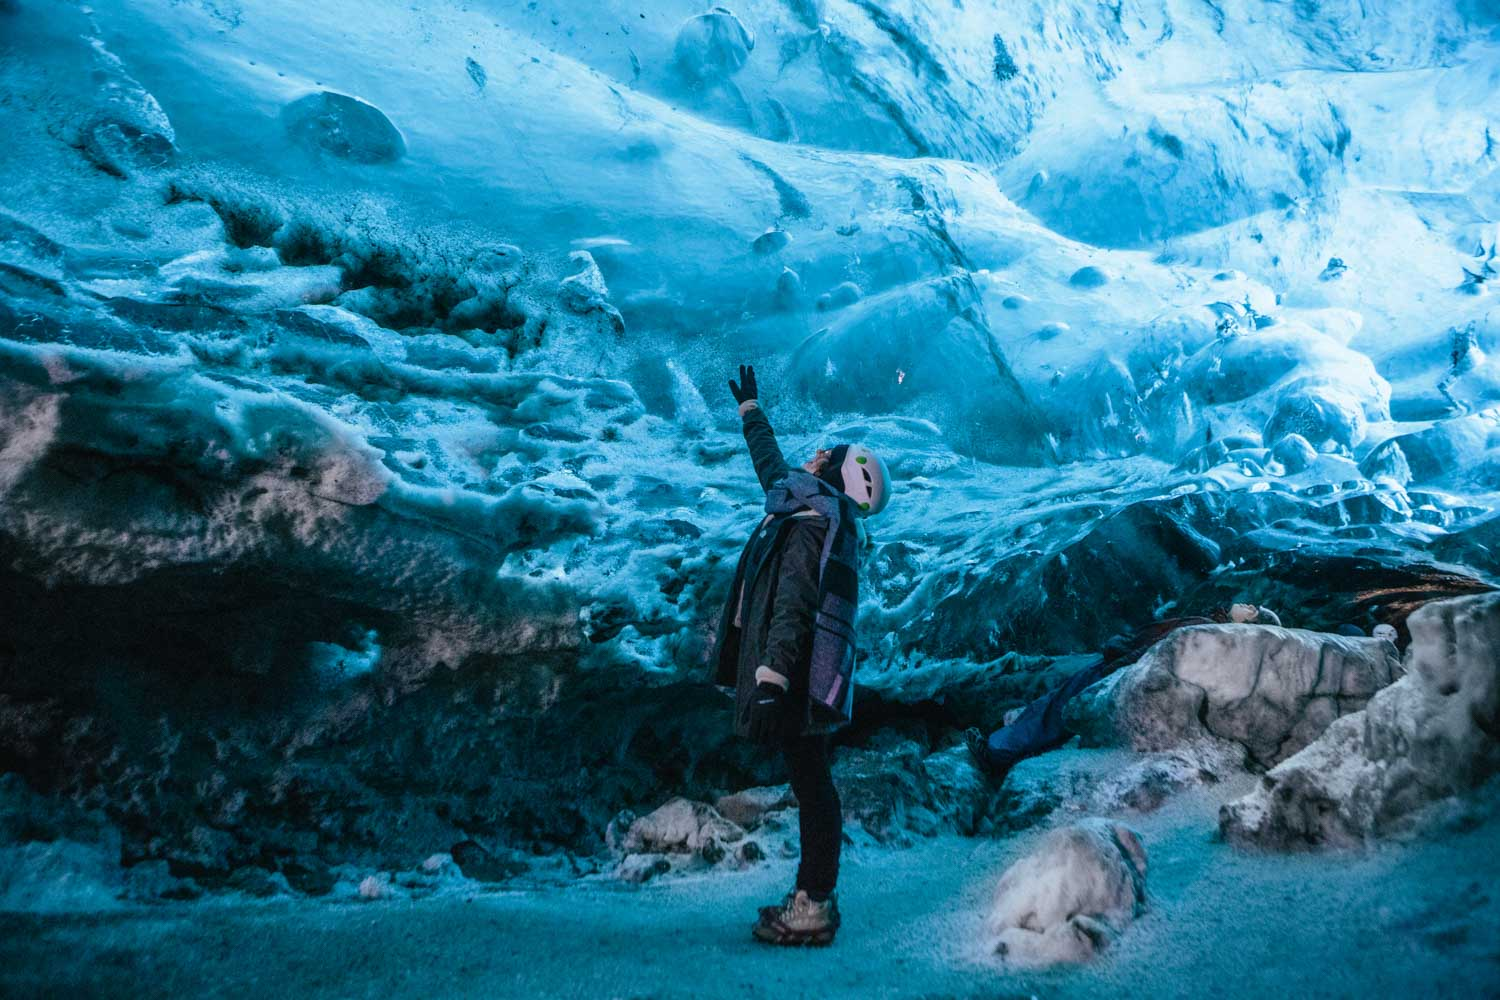 5-day Iceland itinerary - ice caves